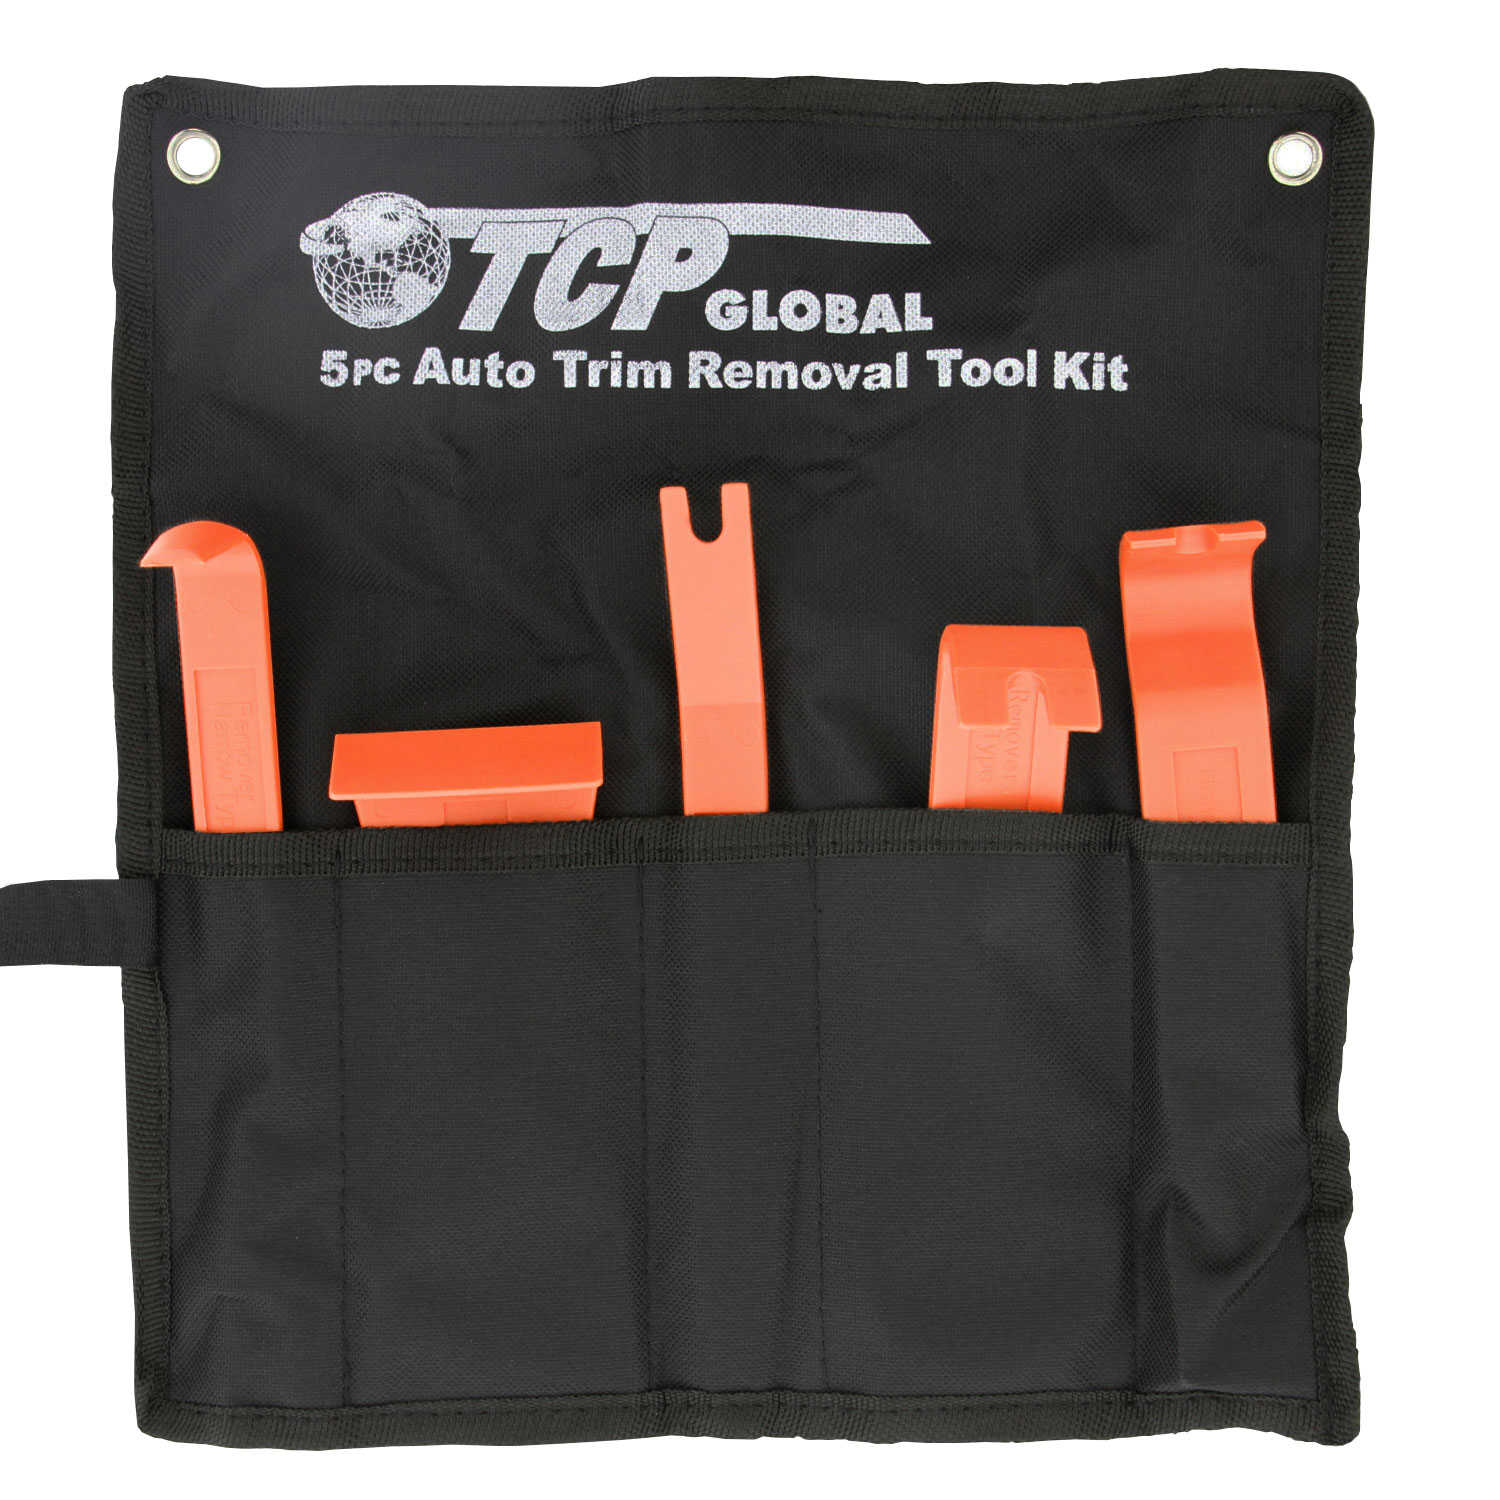 5 Piece Auto Trim Removal Tool Kit - Specialty Tools For Installing and Removing Fasteners, Trims, Molding & Panels